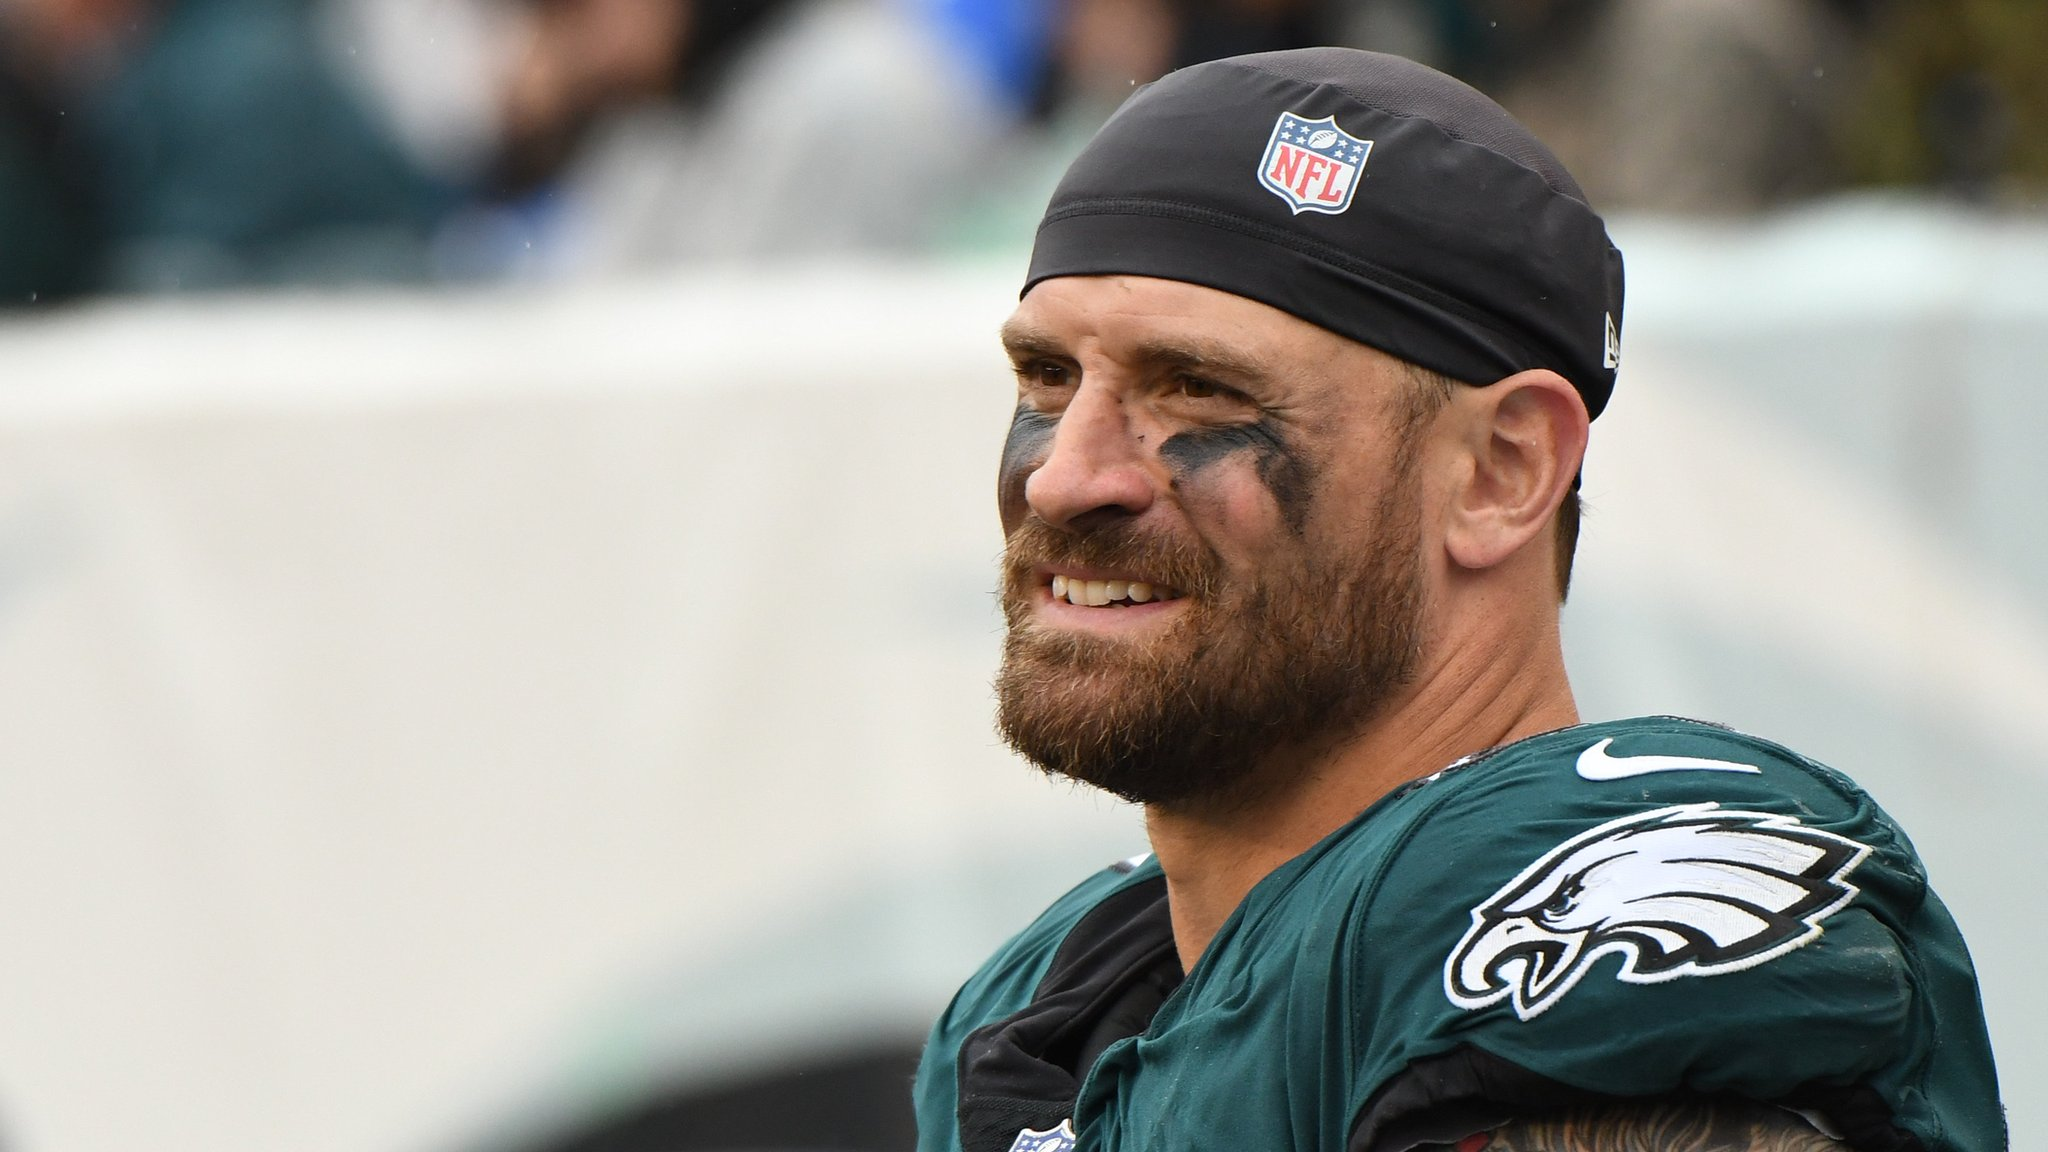 Cannabis and sport: Ex-NFL defensive end Chris Long admits marijuana use for pain management